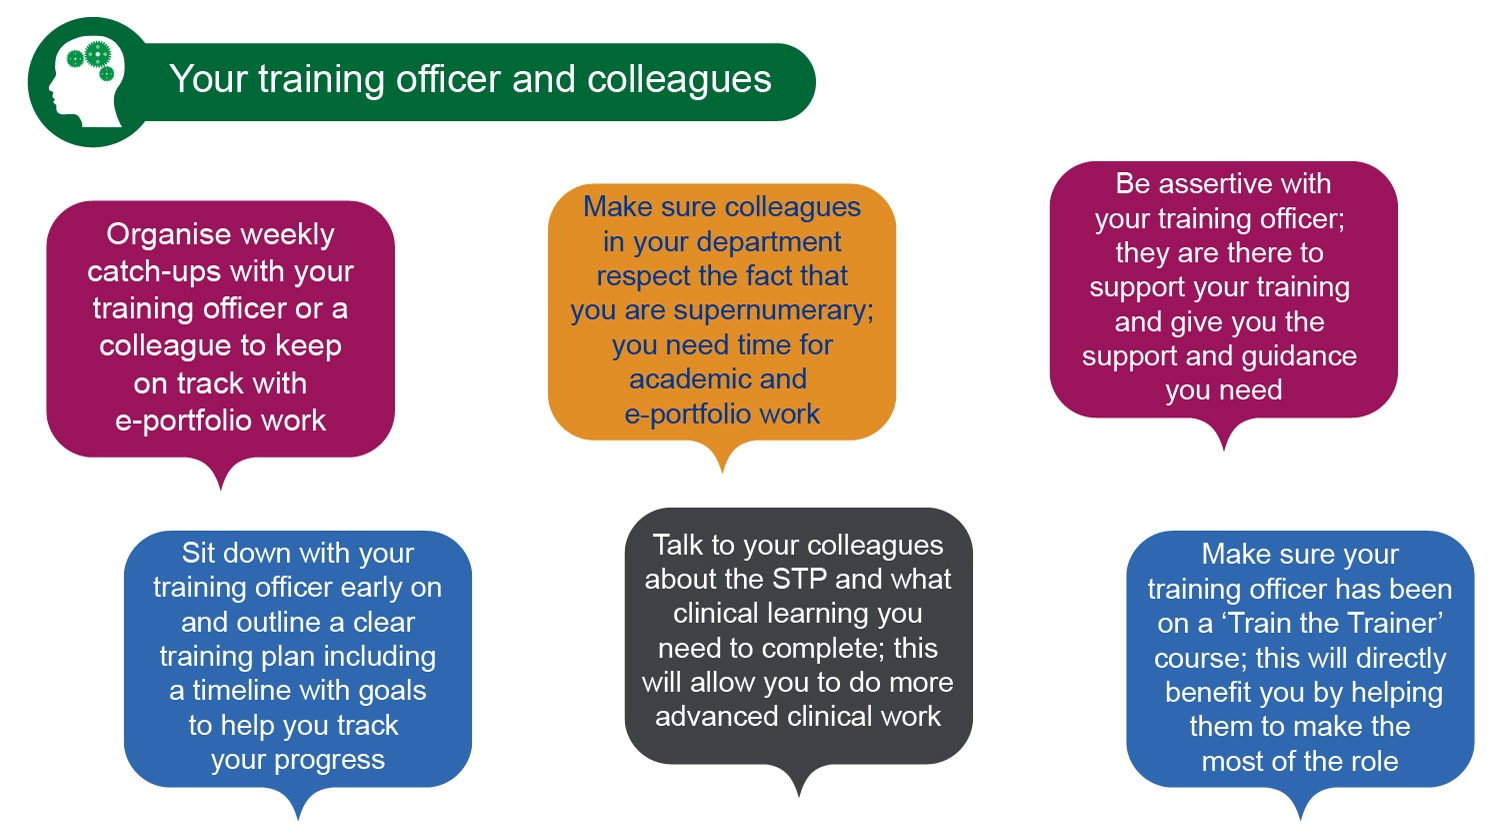 Graphic showing quotes from trainees regards training officers and colleagues